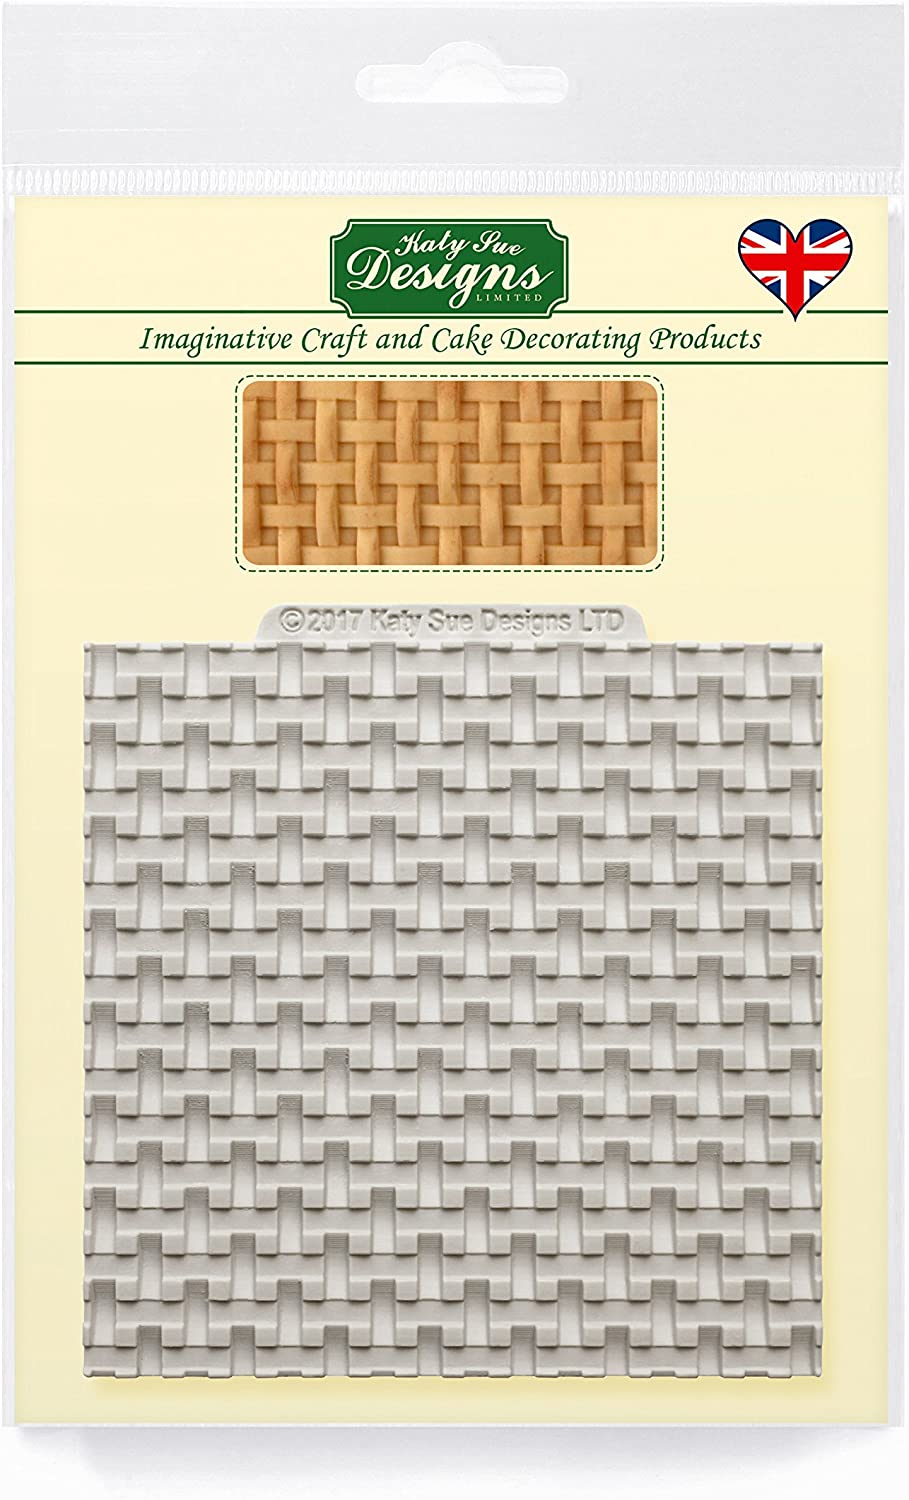 Katy Sue Designs Basket Weave Silicone Mold for Cake Decorating, Crafts, Cupcakes, Sugarcraft, Candies, Cards and Clay, Food Safe Approved, Made in The UK